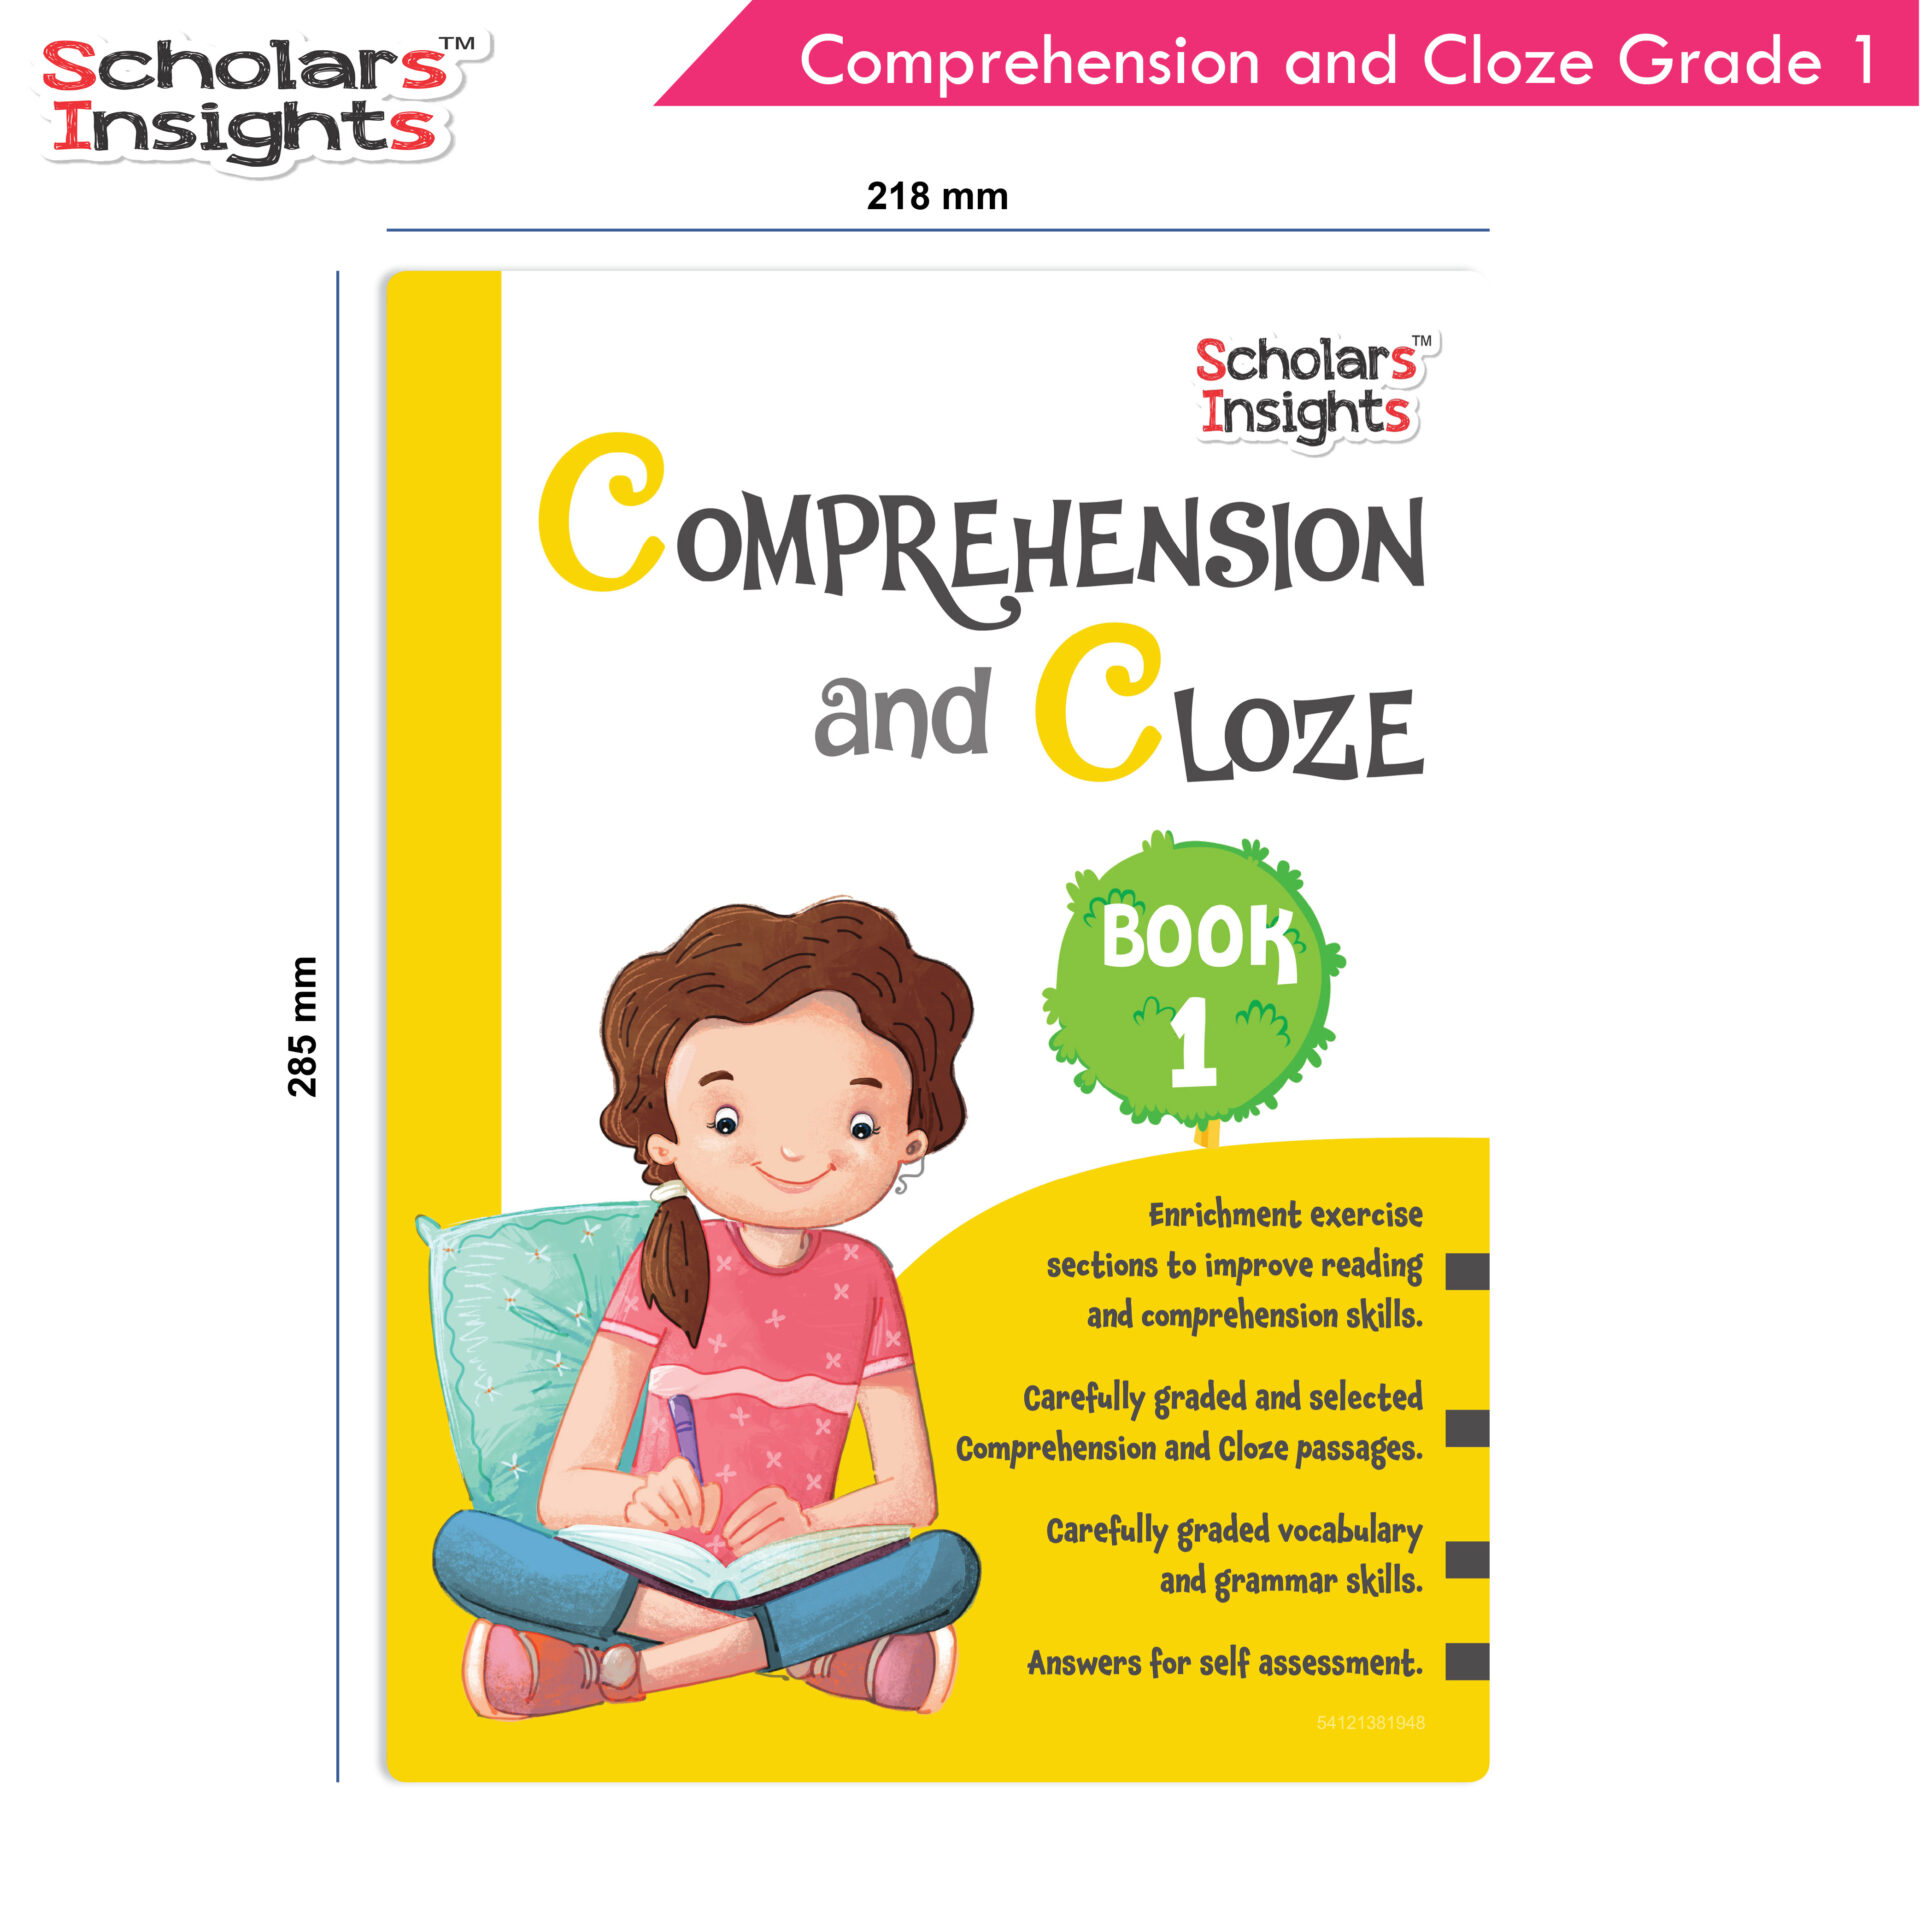 Scholars Insights Comprehension and Cloze Grade 1 2 1